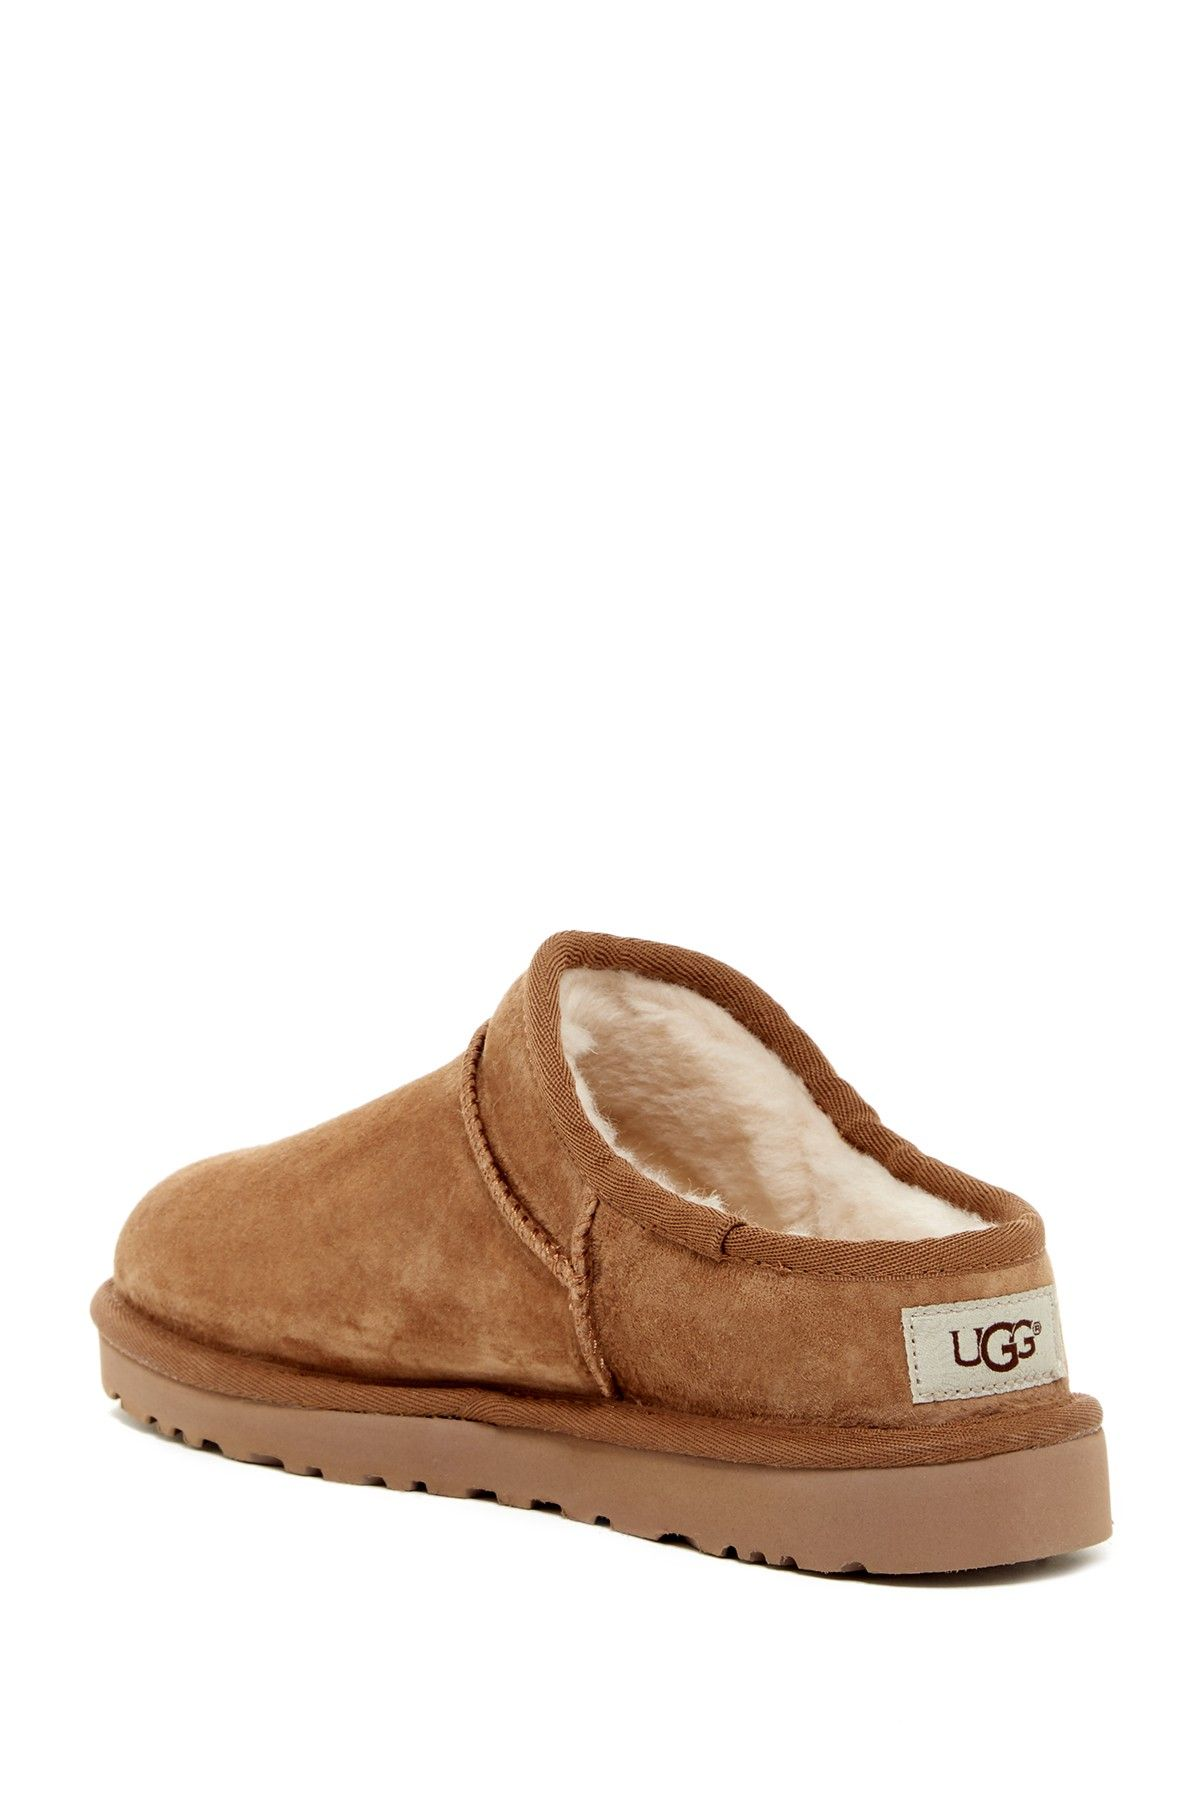 UGG | Classic Water Resistant Slipper